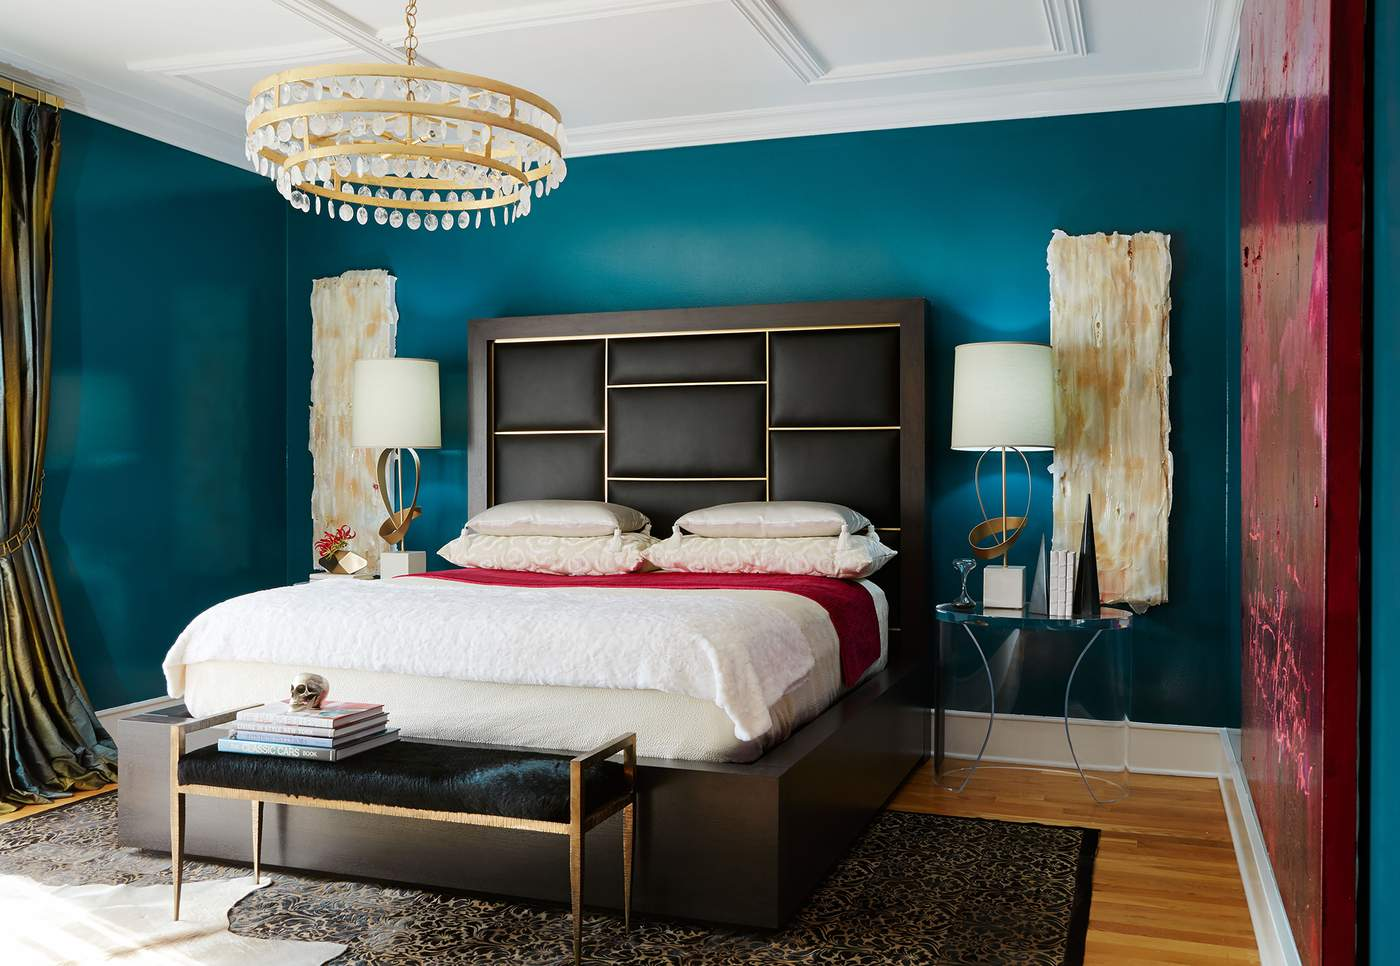 Layered Rugs And A Blend Of Colors, Materials, And Finishes Add Depth And  Dimension To A Bedroom Designed By Donna Mondi. Photography By Nick  Novelli, ...